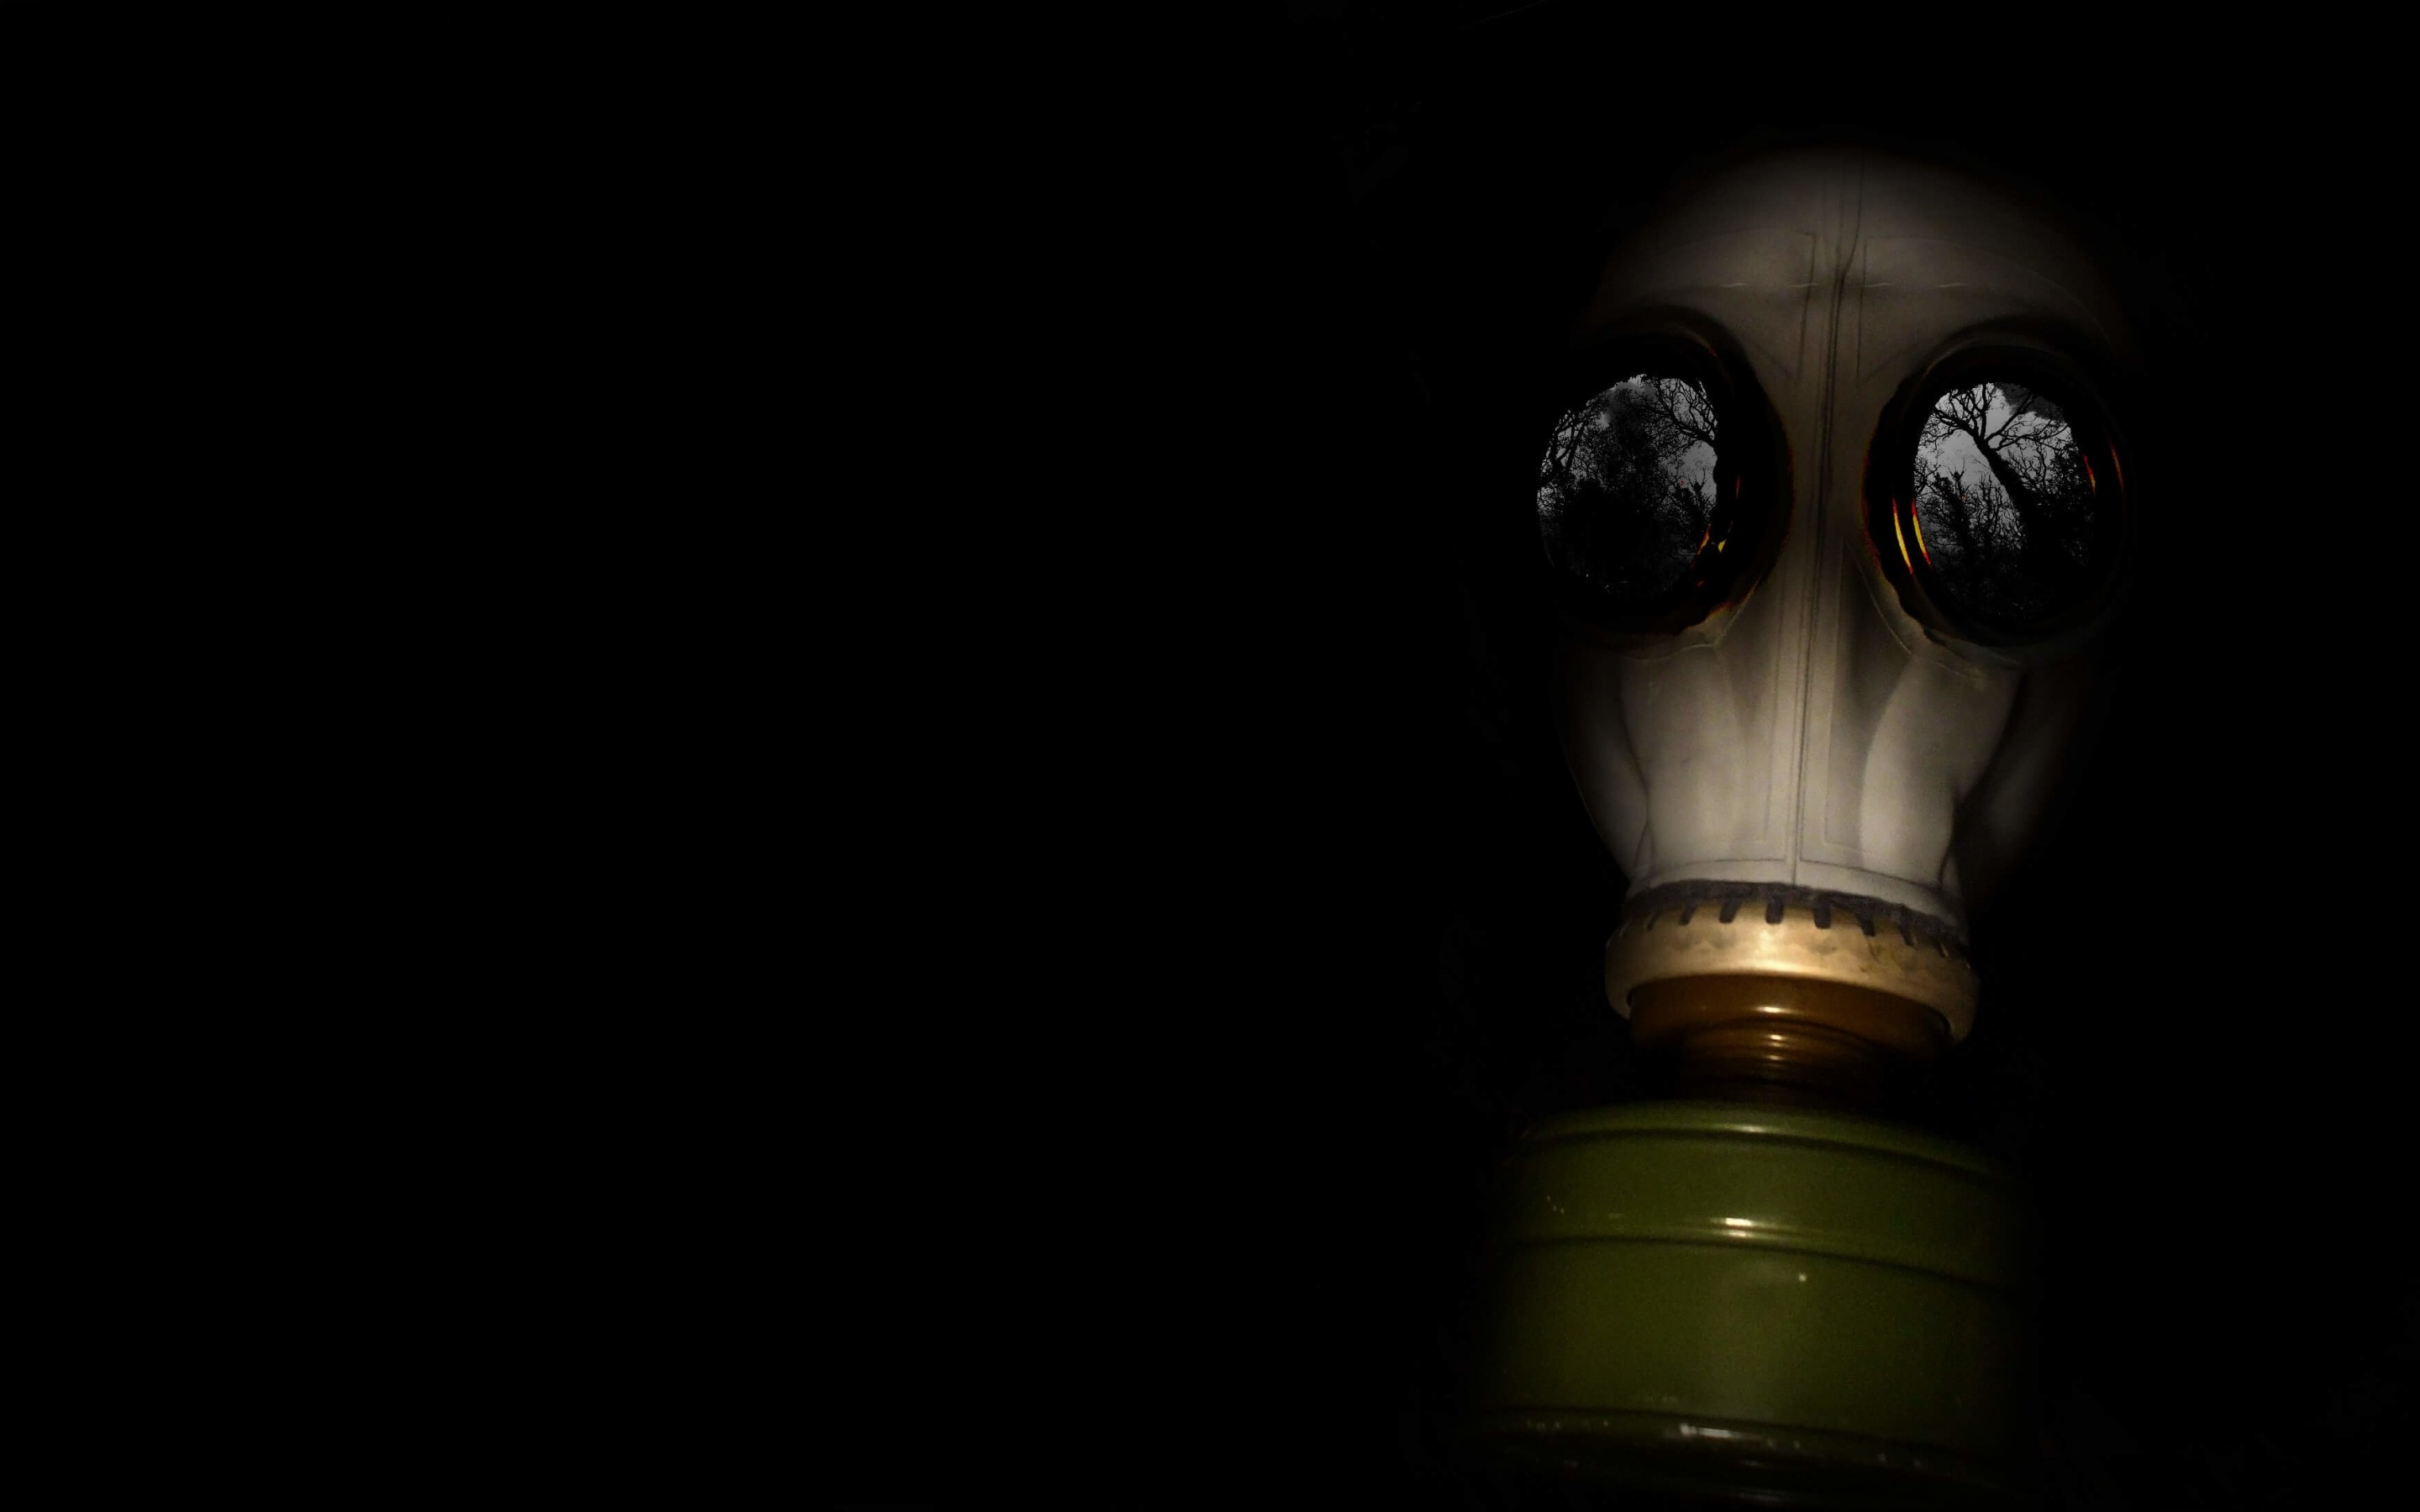 WWII Gas Mask Wallpaper for Desktop 2880x1800